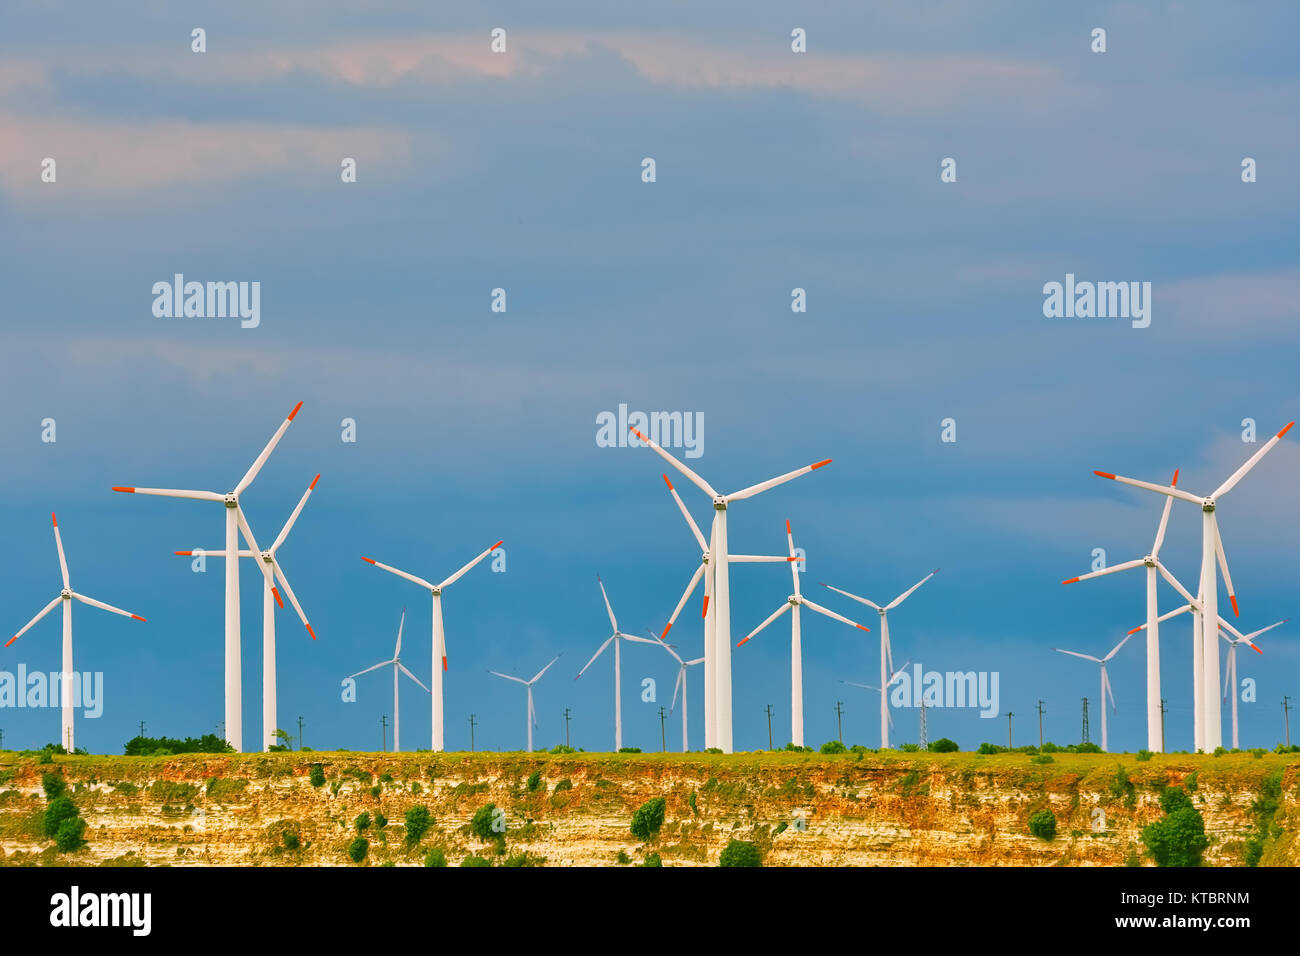 Auxiliary Power Stock Photos Images Alamy 25 Floppy Drive Wind Generator Construction Details Turbines At The Cape Kaliakra Image